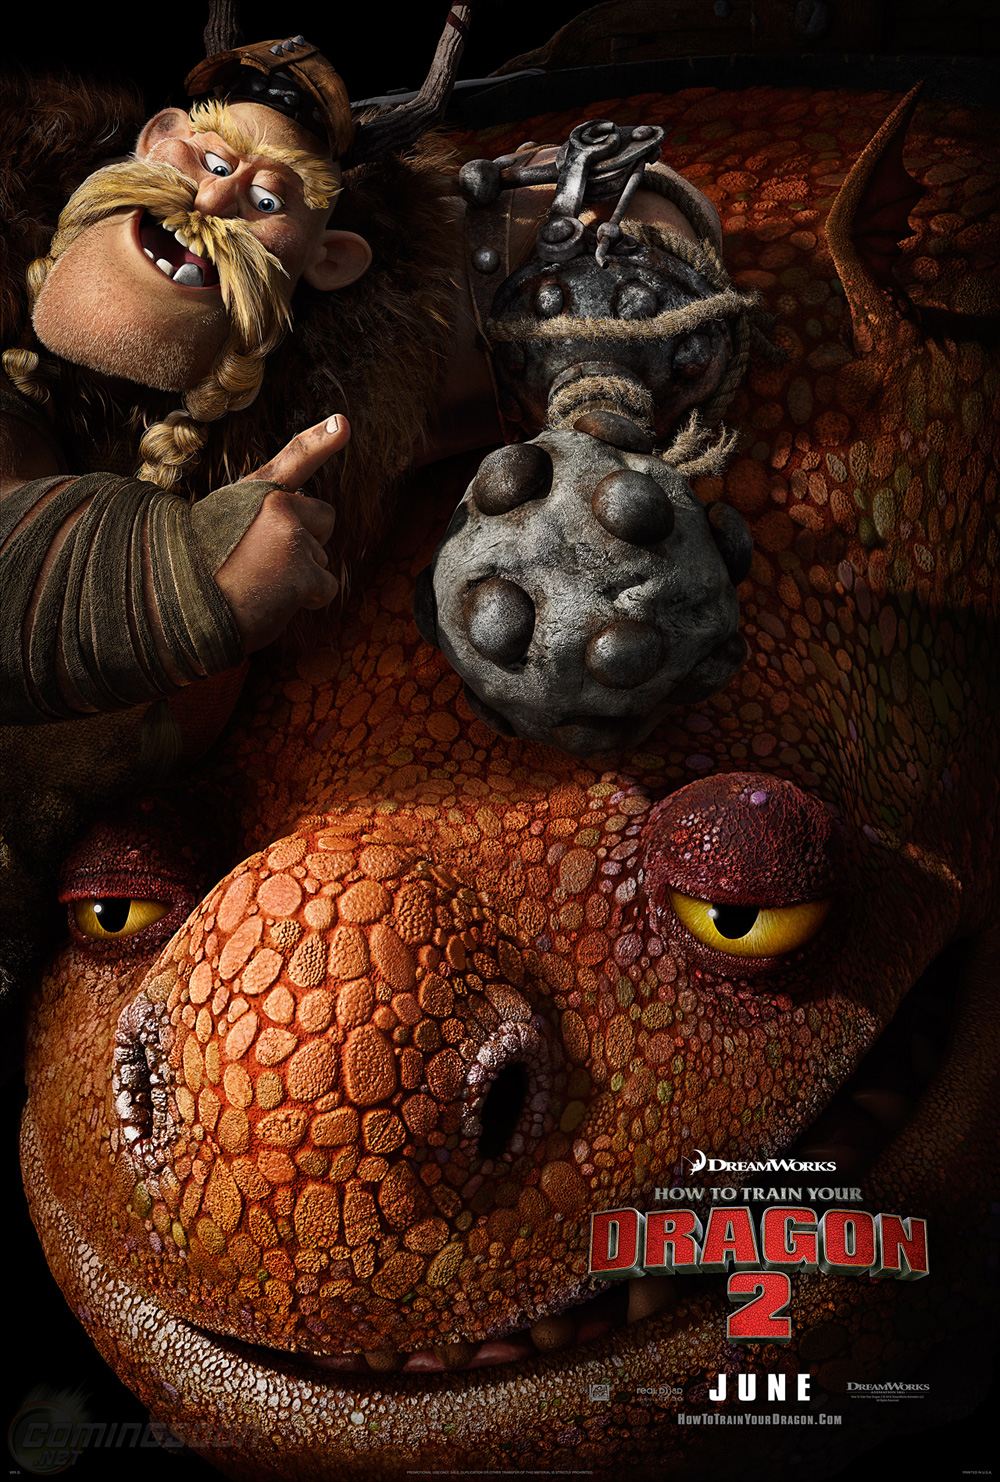 New How To Train Your Dragon 2 Trailer Preview And Poster